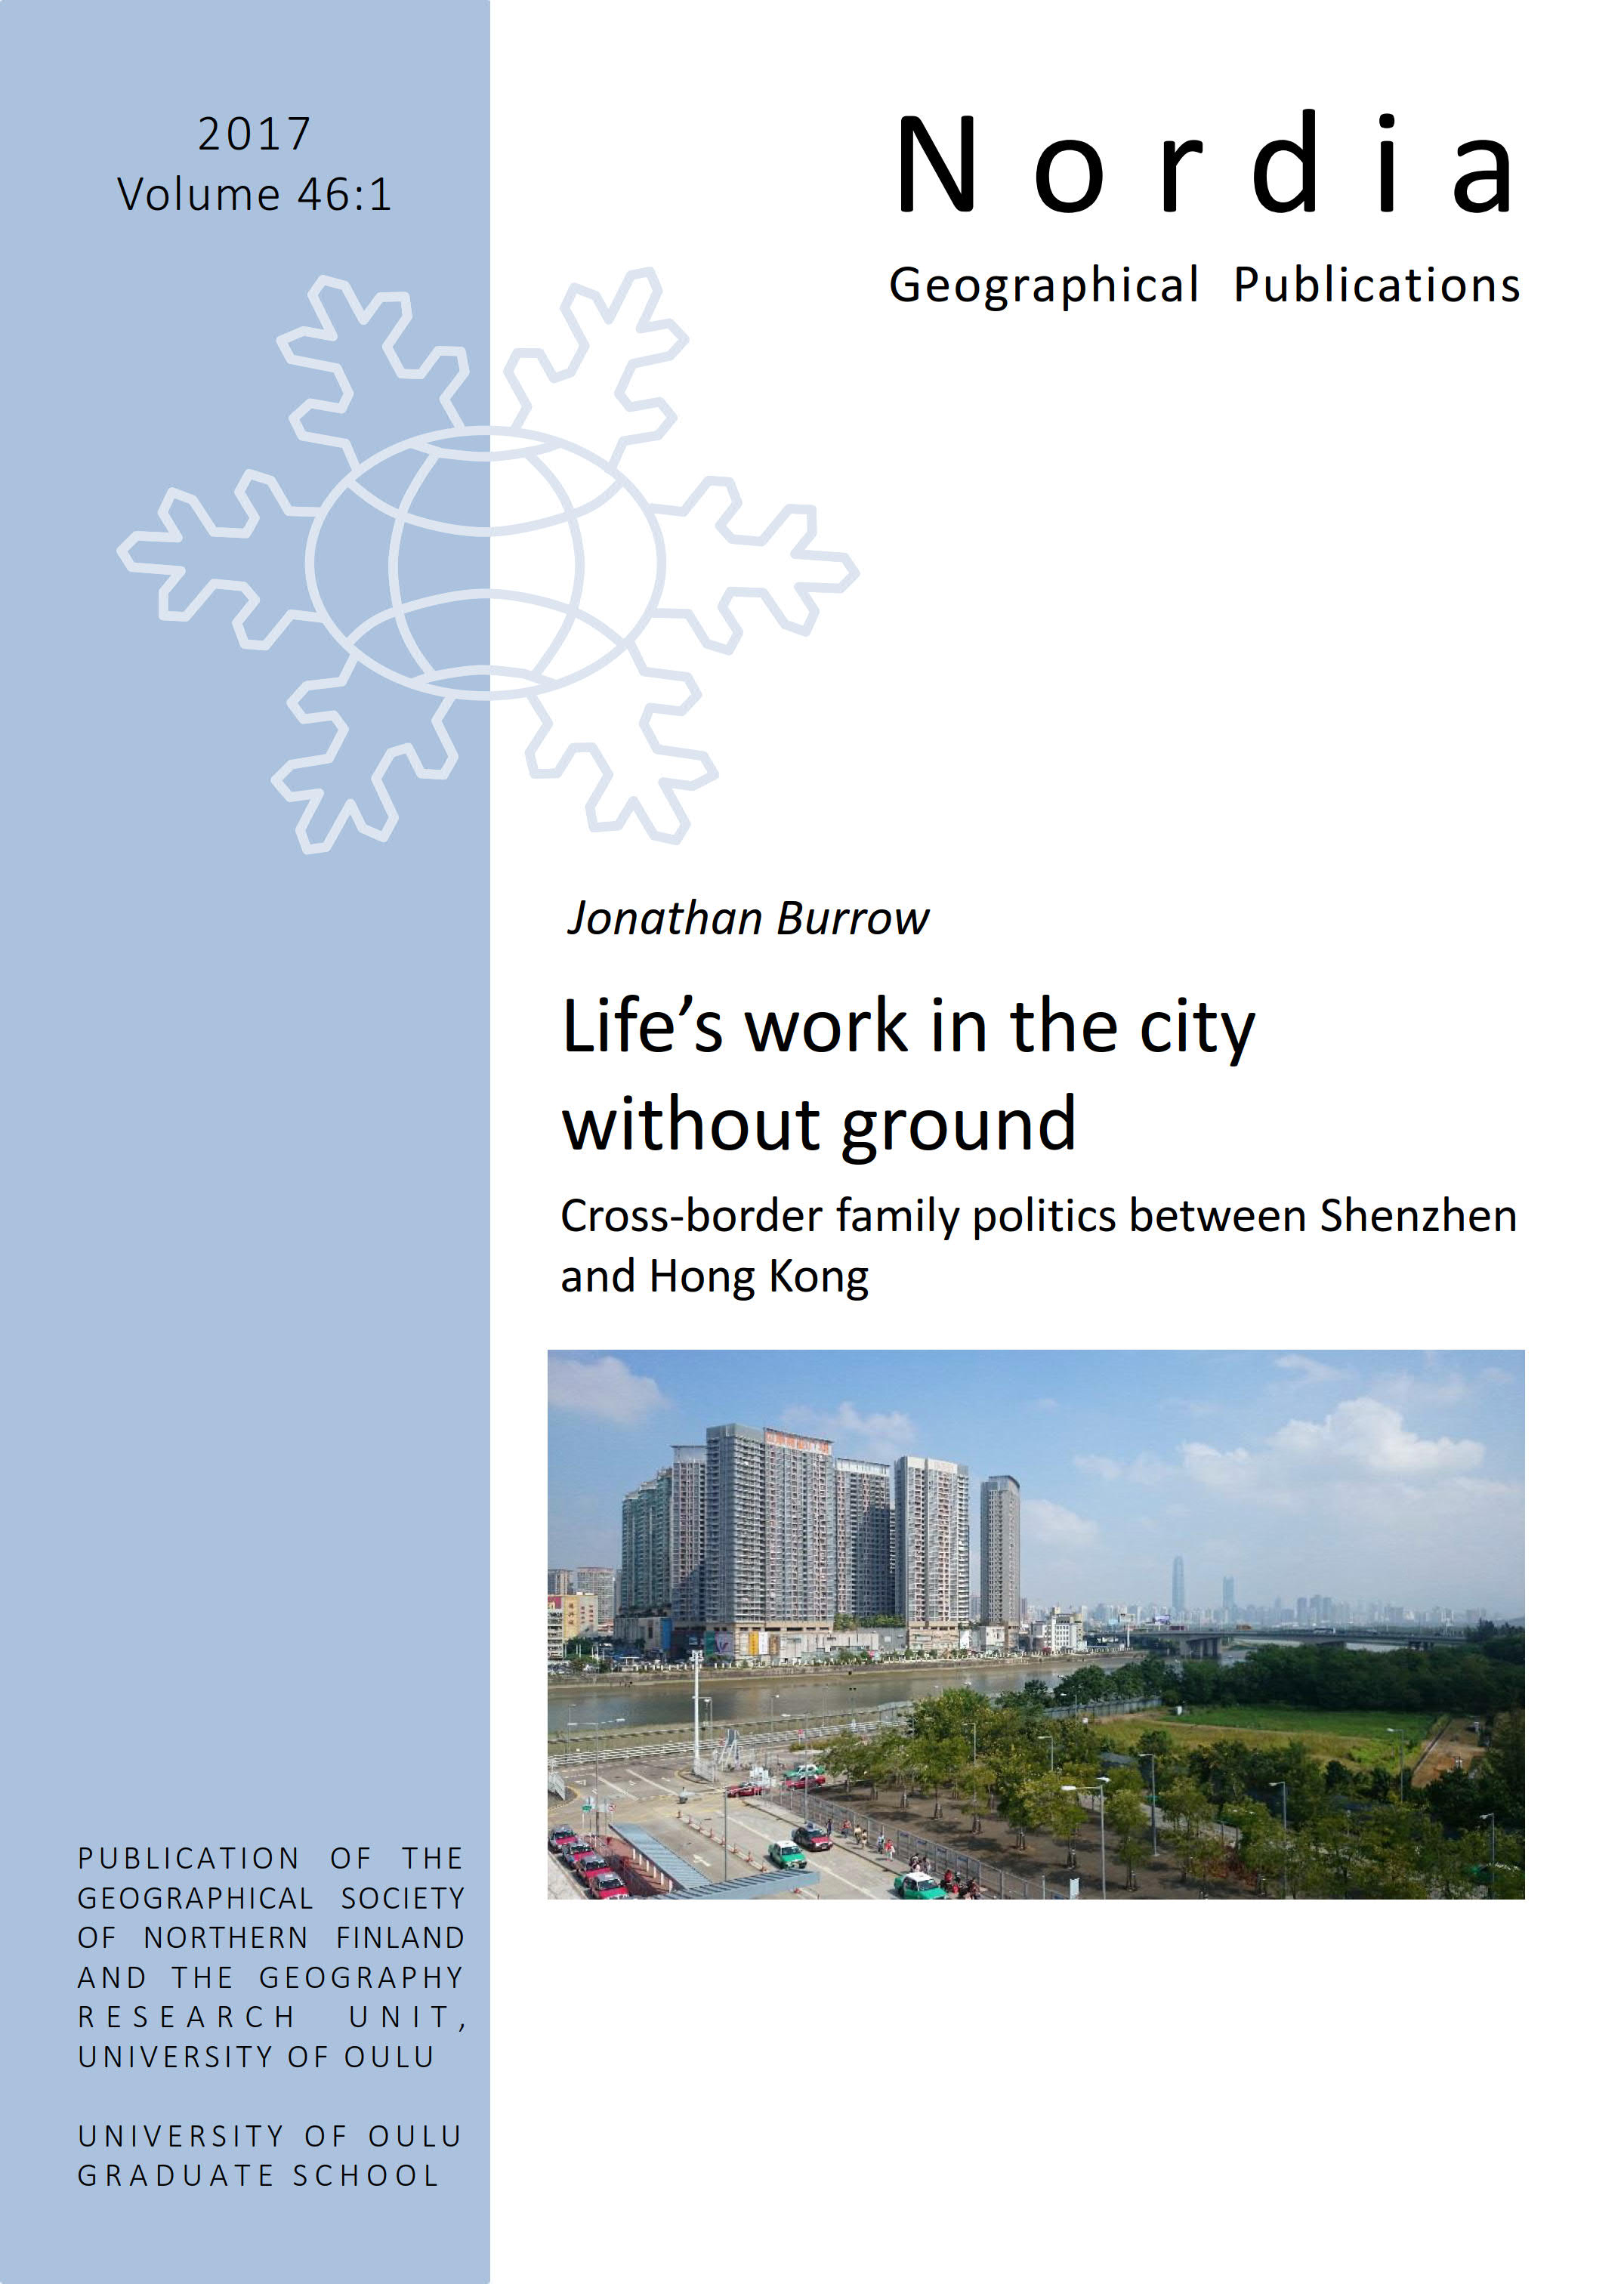 View Vol. 46 No. 1 (2017): Life's work in the city without ground: Cross-border family politics between Shenzhen and Hong Kong